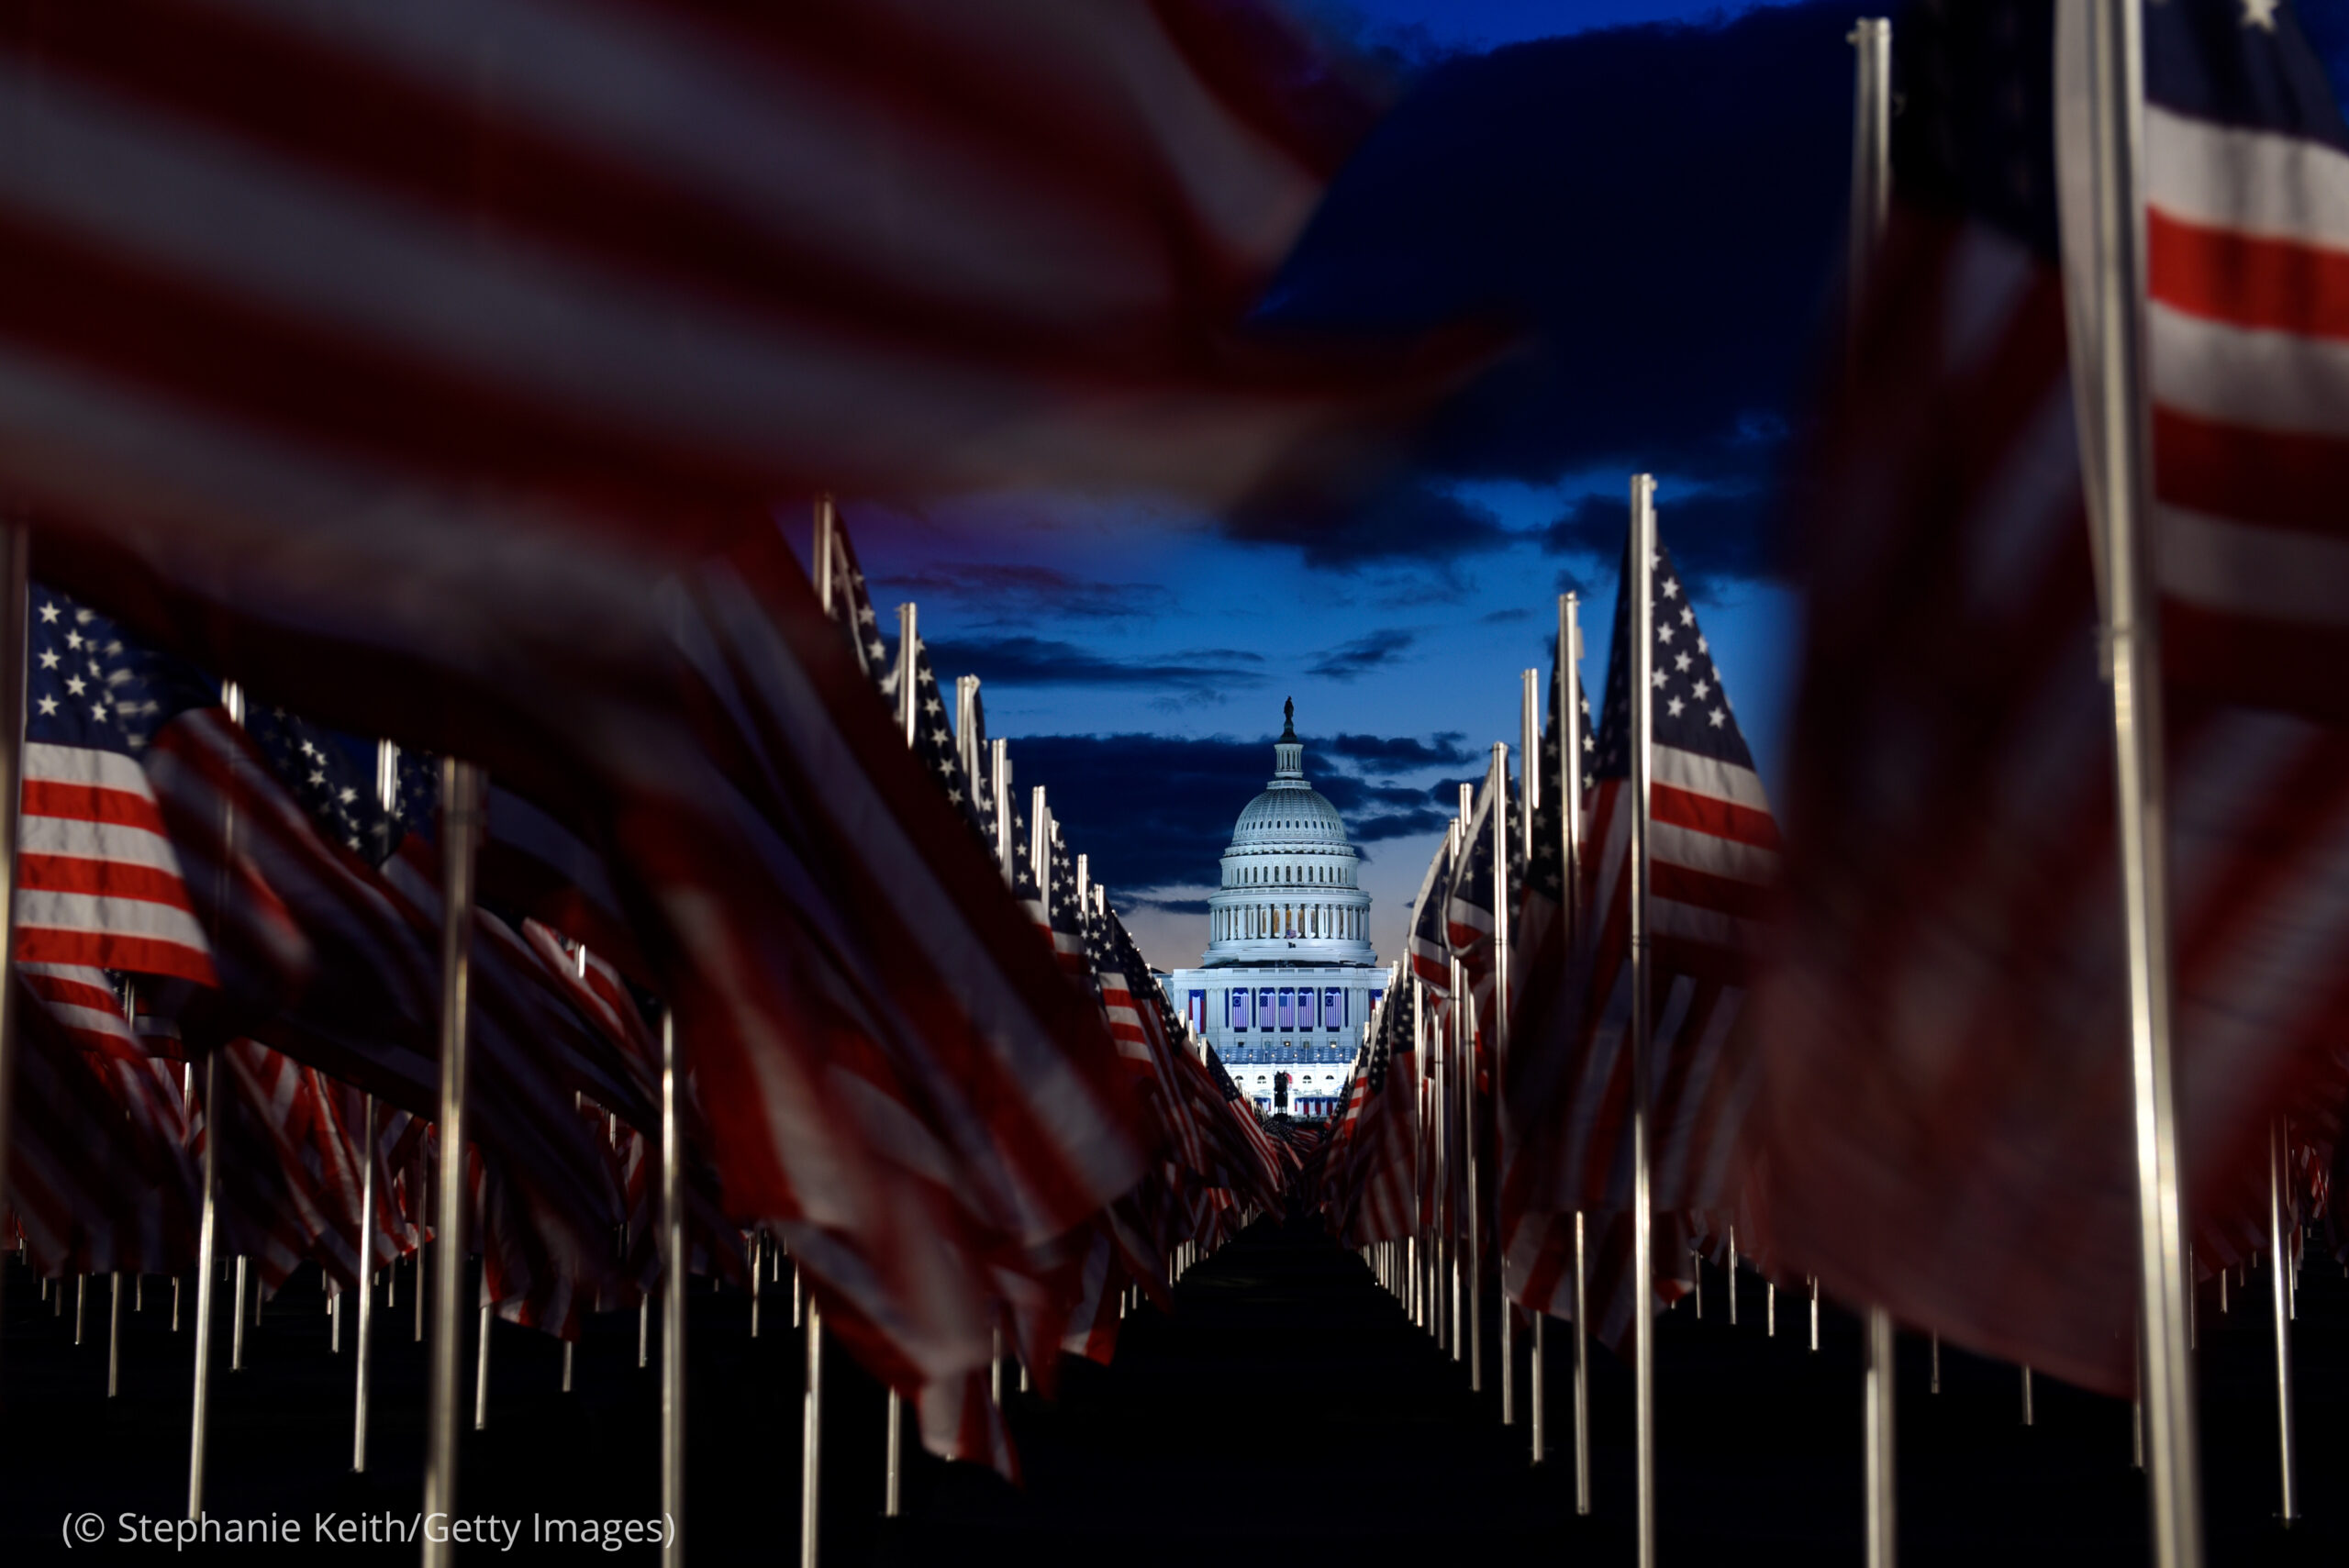 U.S. Capitol building seen at sunrise through rows of U.S. flags stuck in ground (© Stephanie Keith/Getty Images)